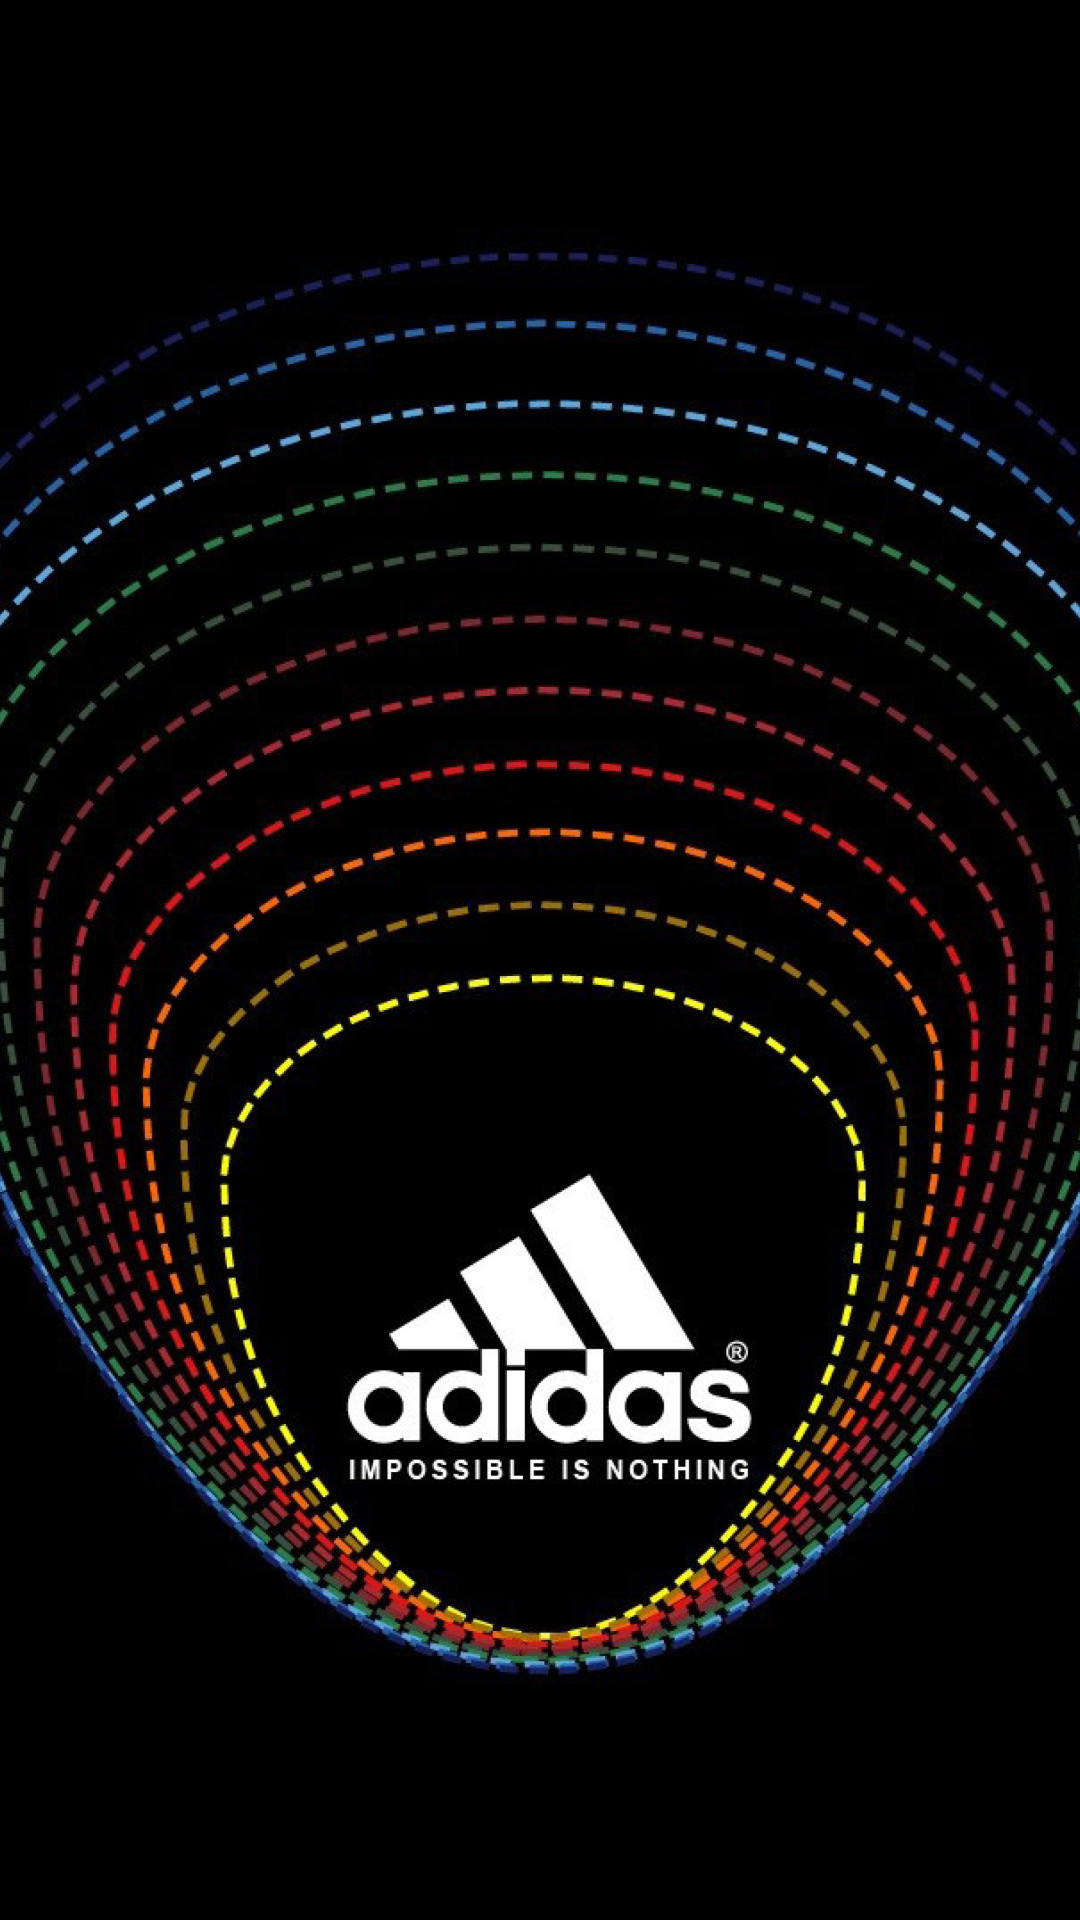 Free download 78 Adidas Iphone Wallpapers on WallpaperPlay ...